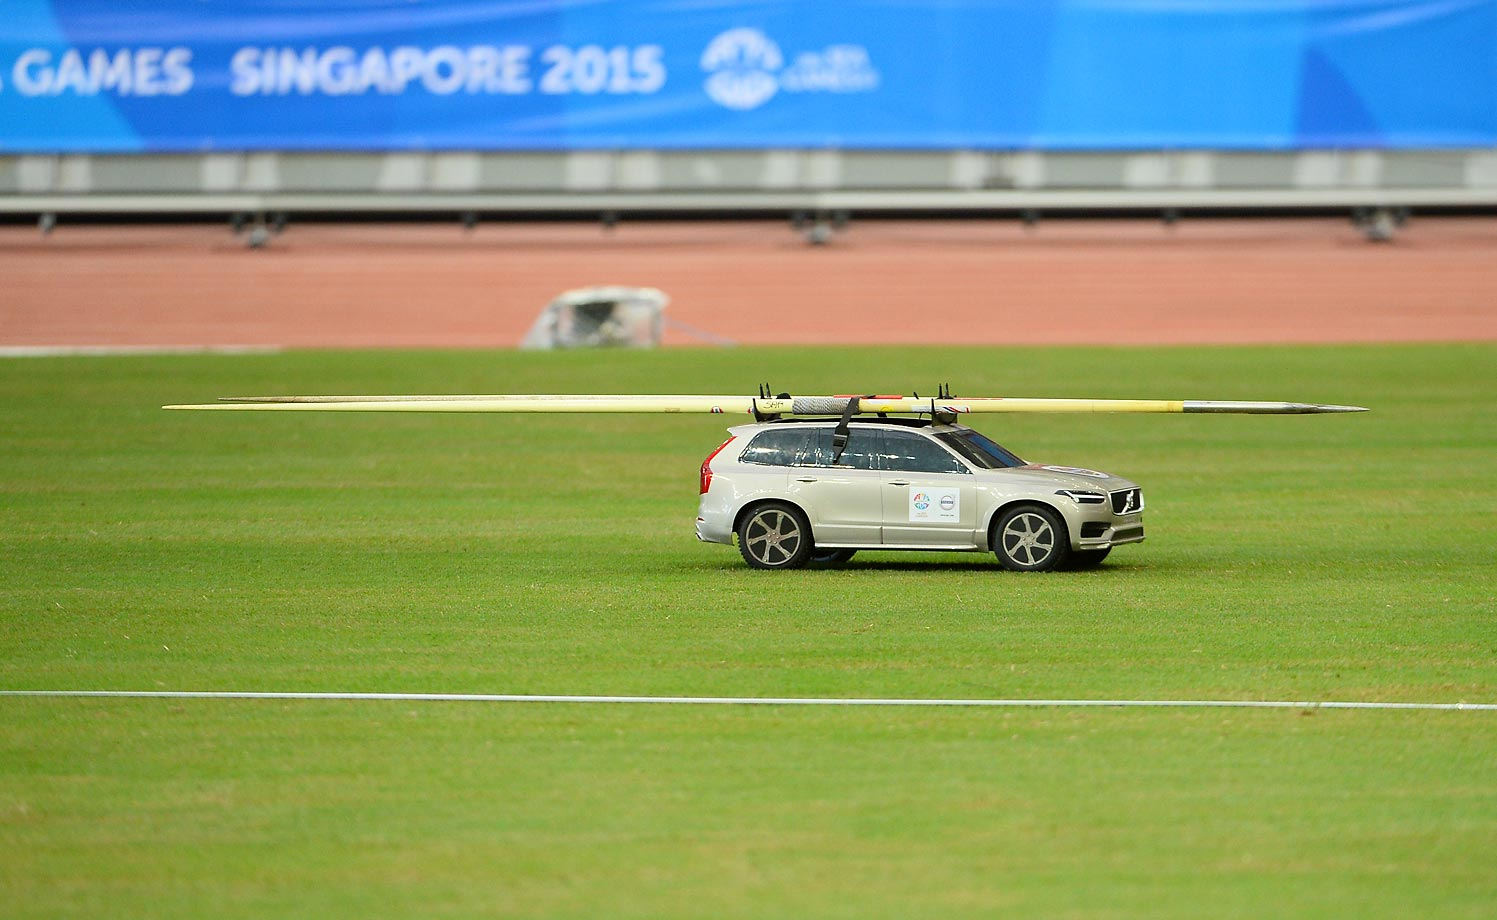 A remote-controlled car transports a pair of javelins on June 10 at the Southeast Asian Games in Singapore.